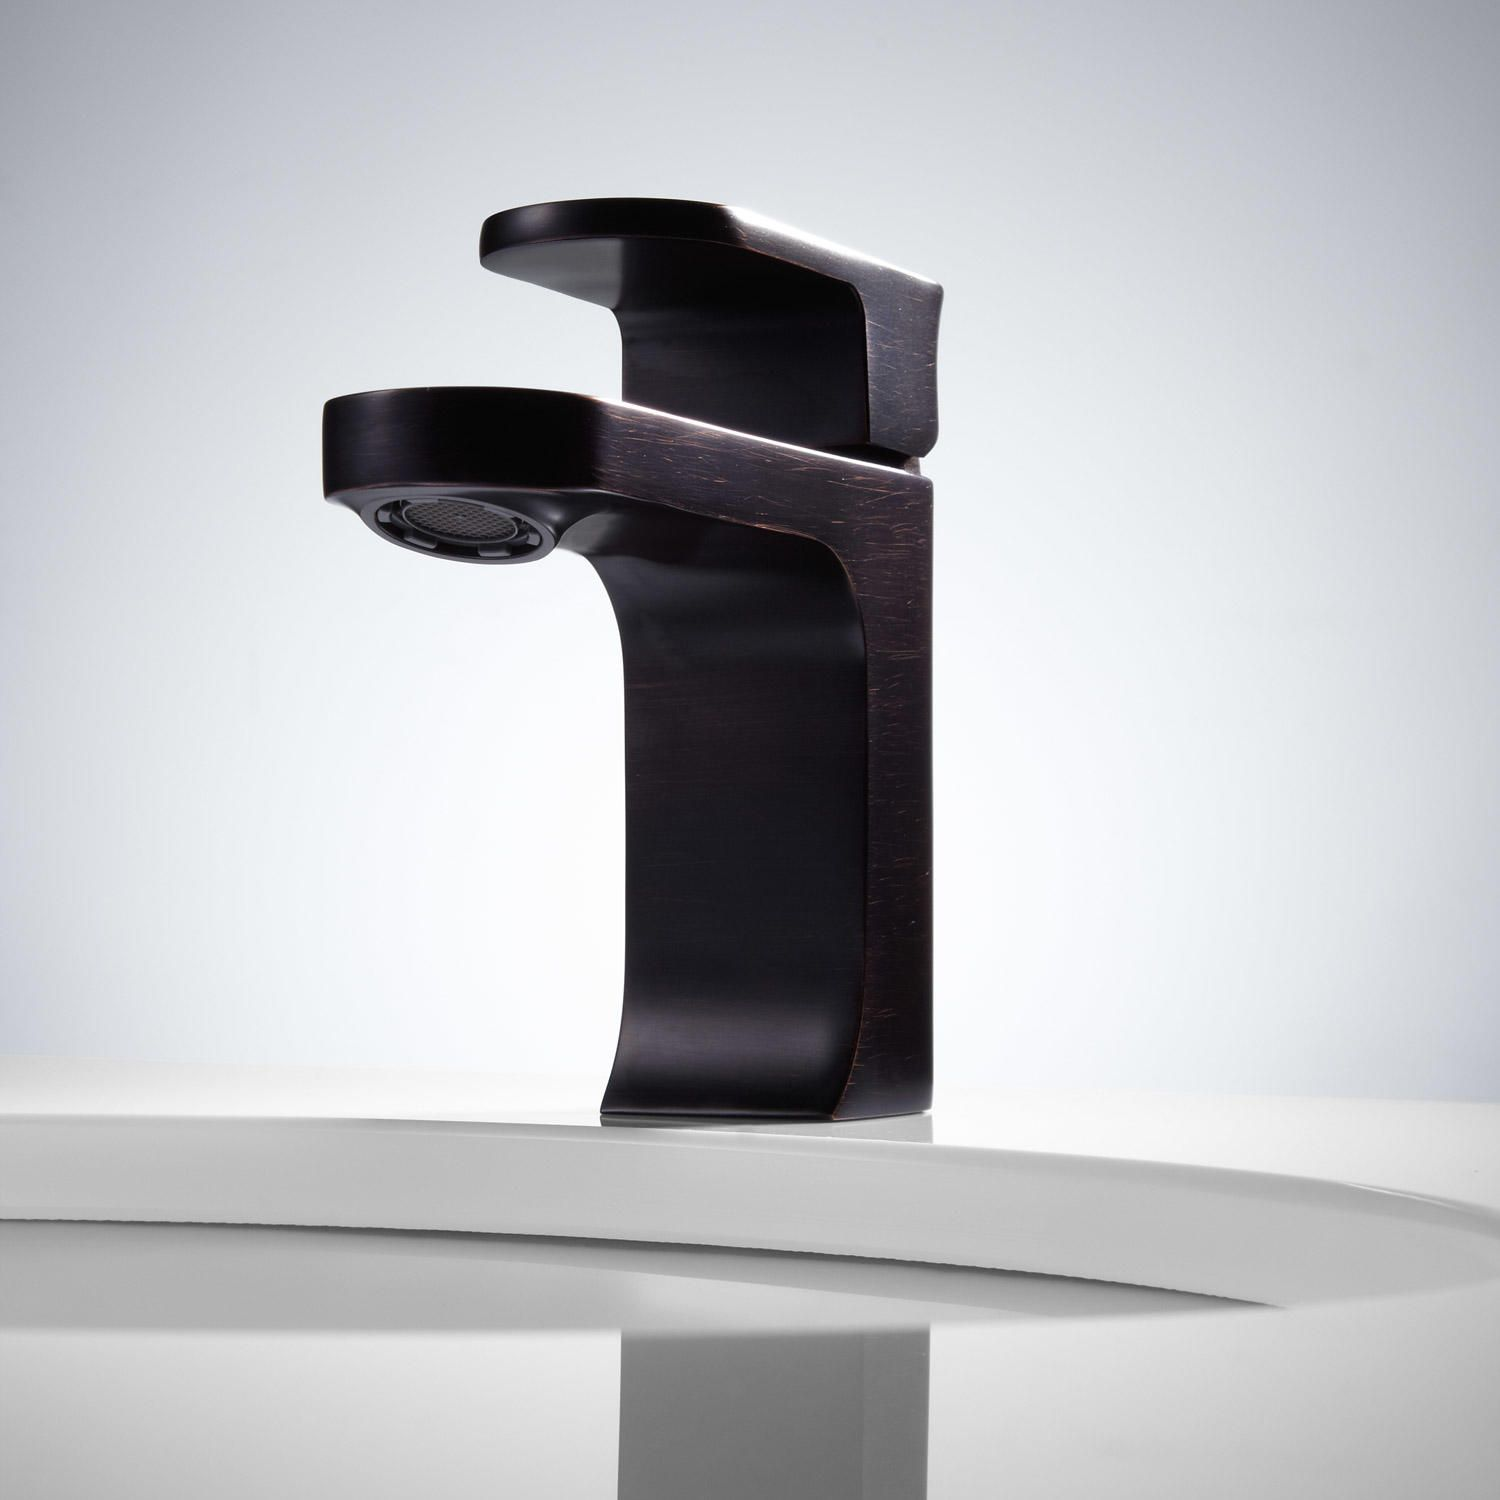 Portico Single-Hole Bathroom Faucet with Pop-Up Drain | Faucet and ...